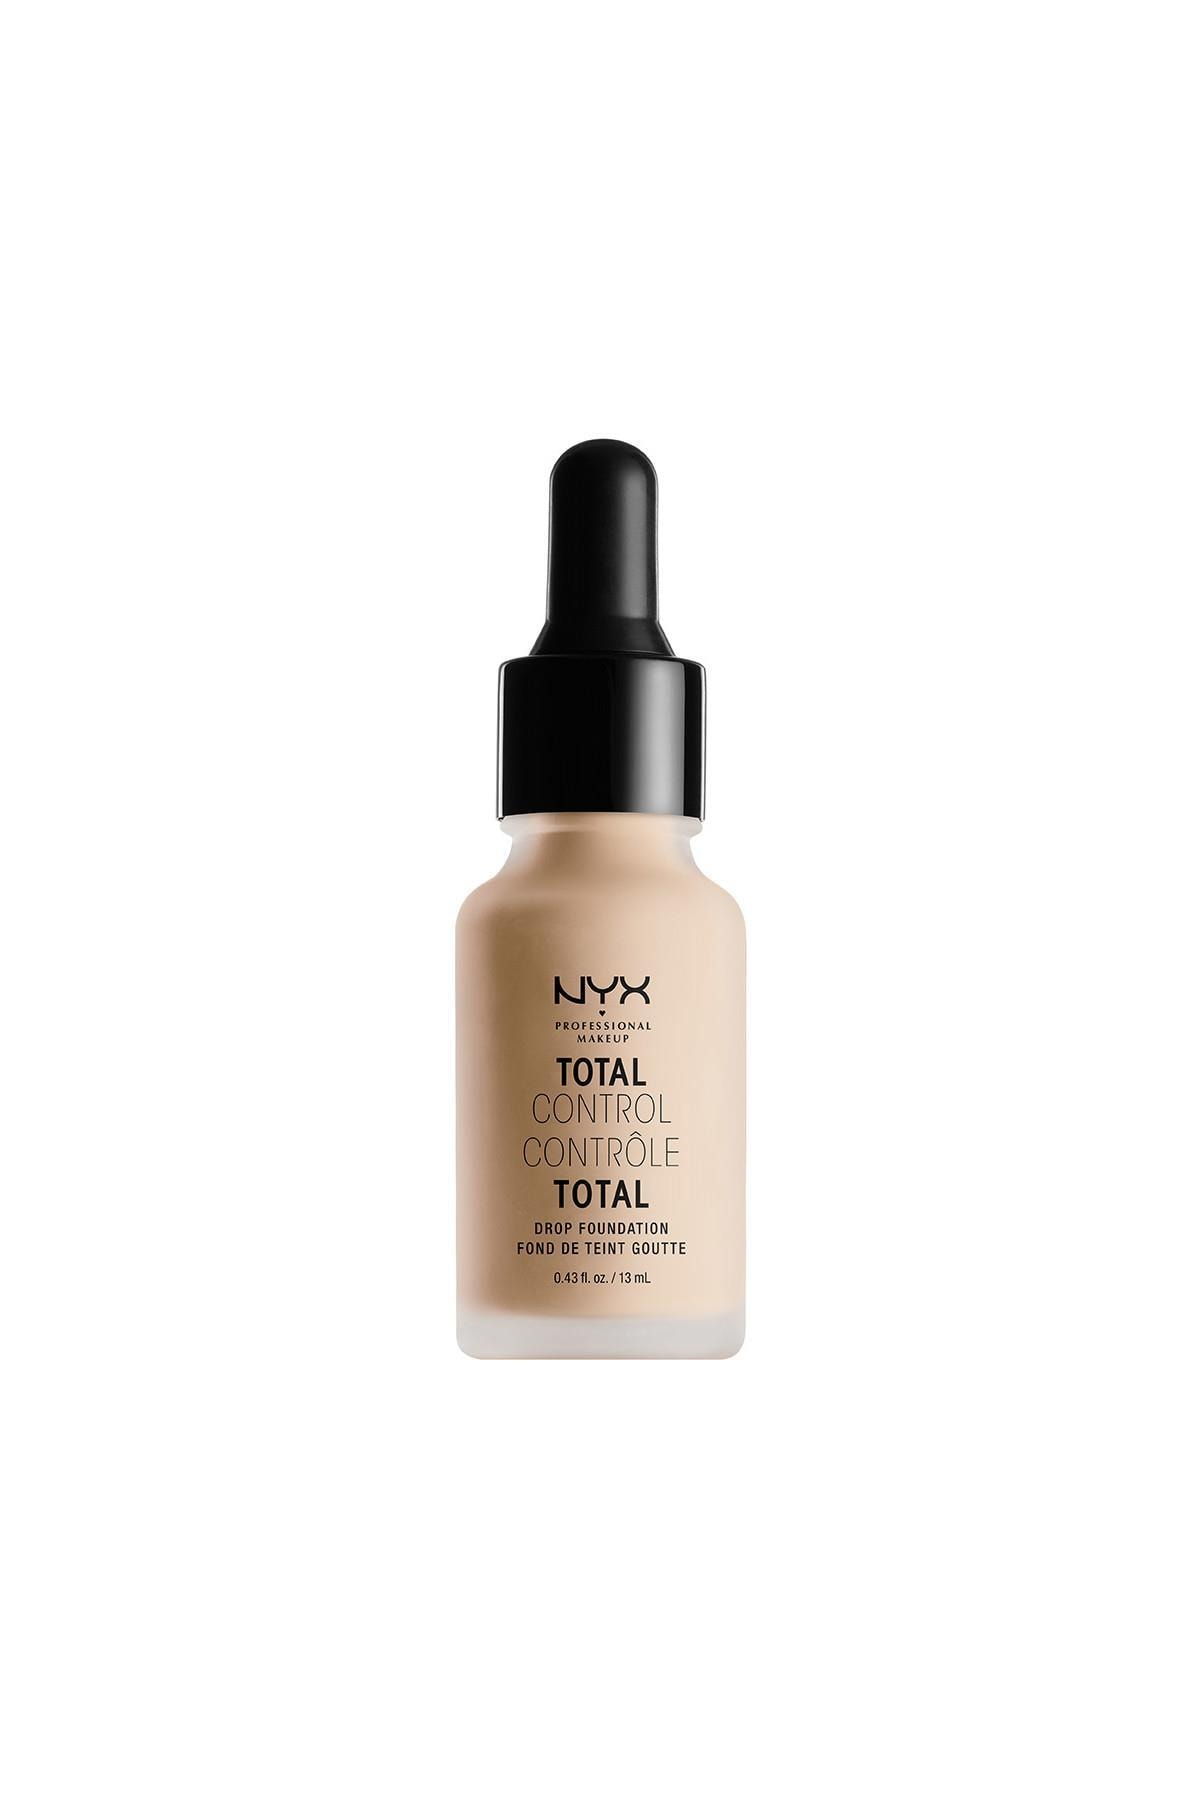 NYX Professional Makeup Mat Fondöten - Total Control Drop Foundation Vanilla 800897068790